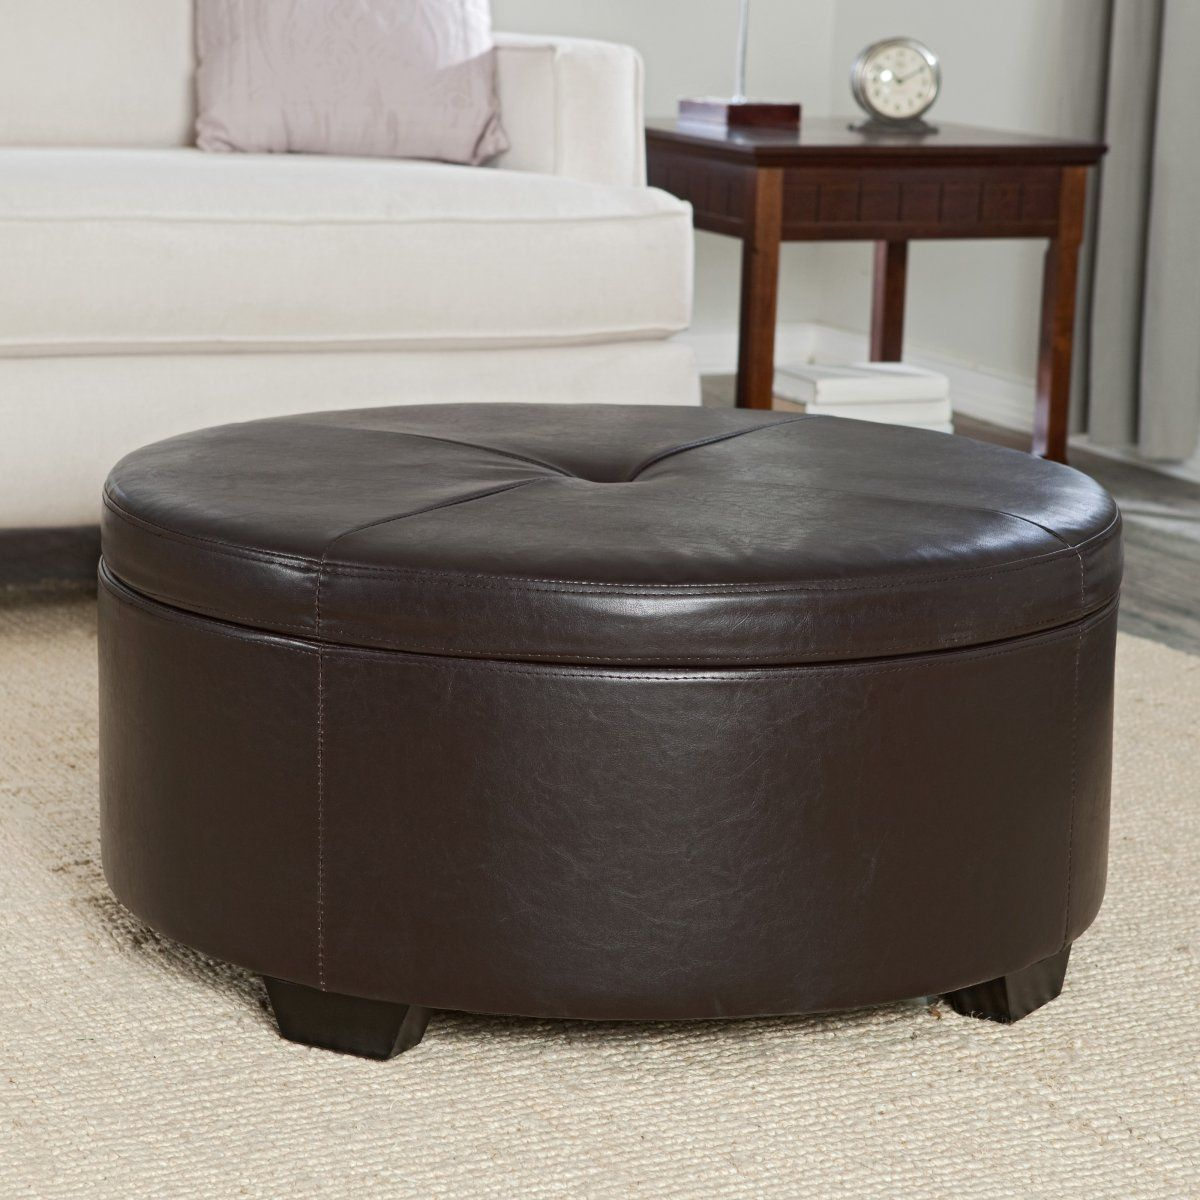 Round Leather Storage Ottoman Coffee Table   Rooms To Go Living Room Set  Check More At